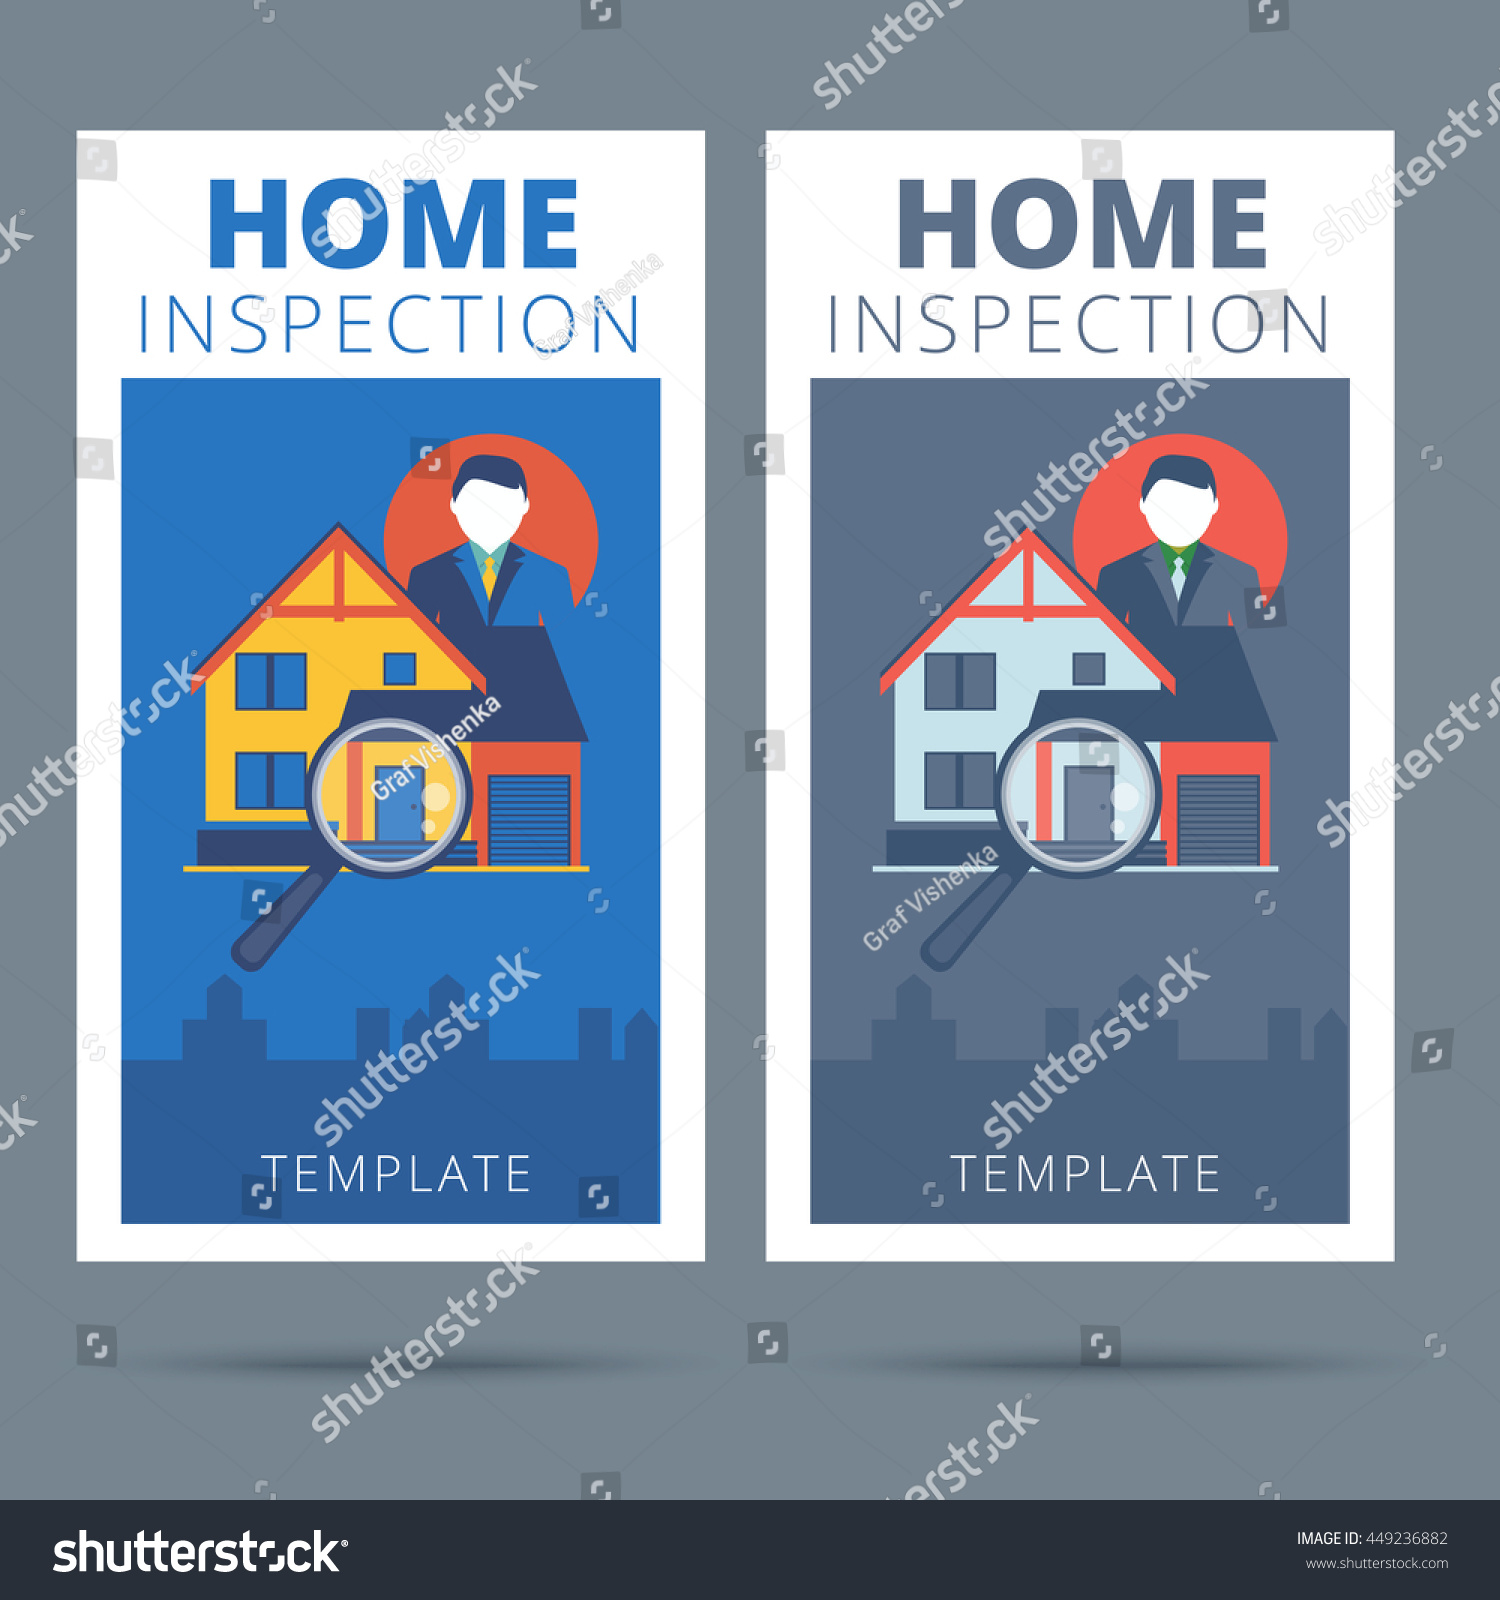 Federal law enforcement business cards gallery free business cards inspirational pics of home inspector business cards business cards home inspection vector business card concept stock magicingreecefo Choice Image